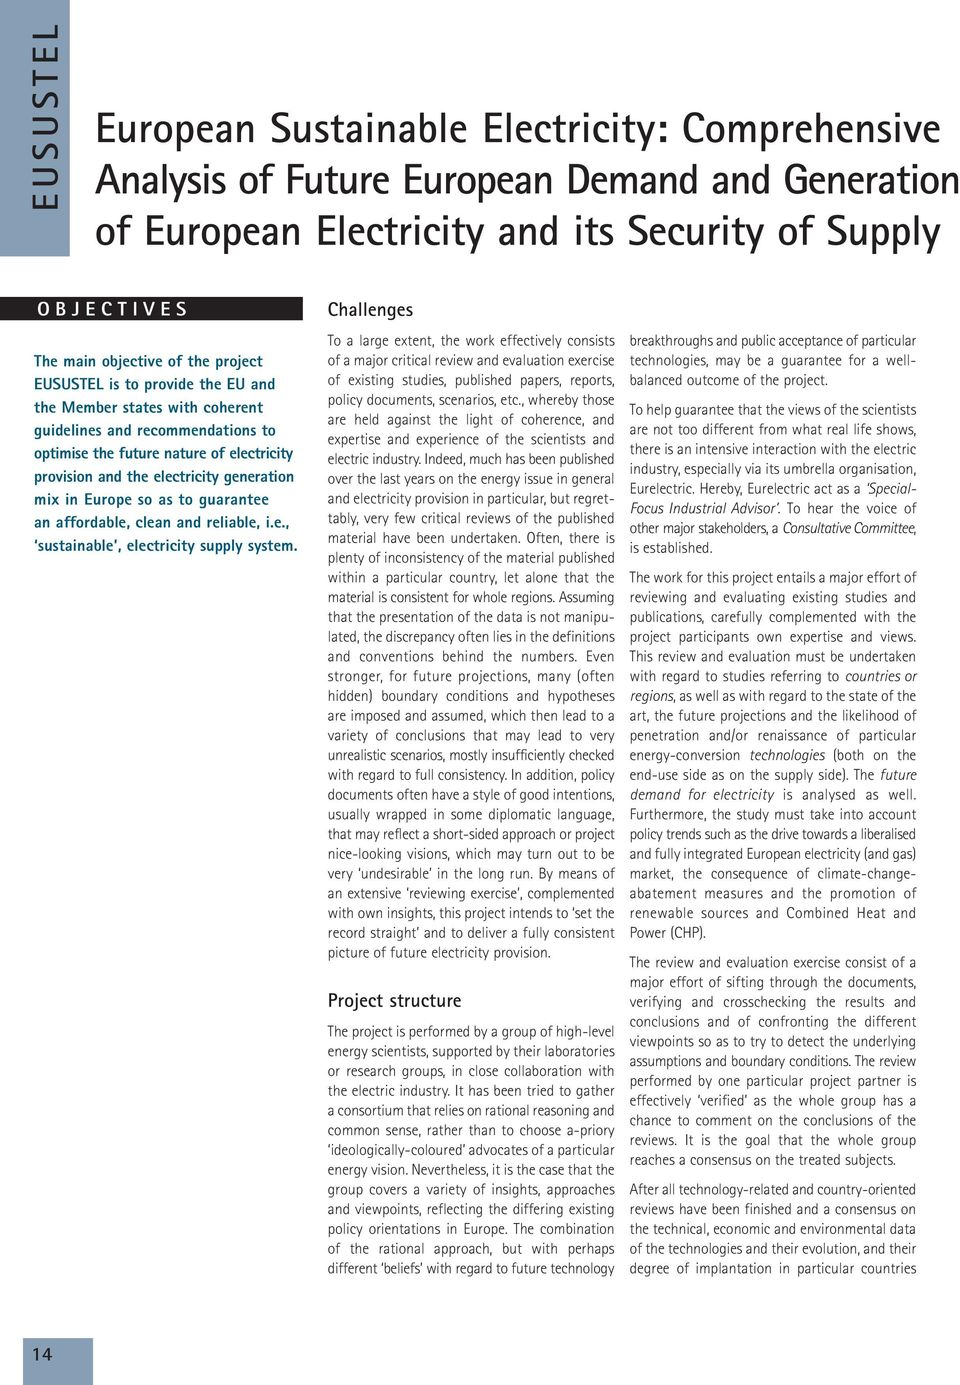 Europe so as to guarantee an affordable, clean and reliable, i.e., sustainable, electricity supply system.